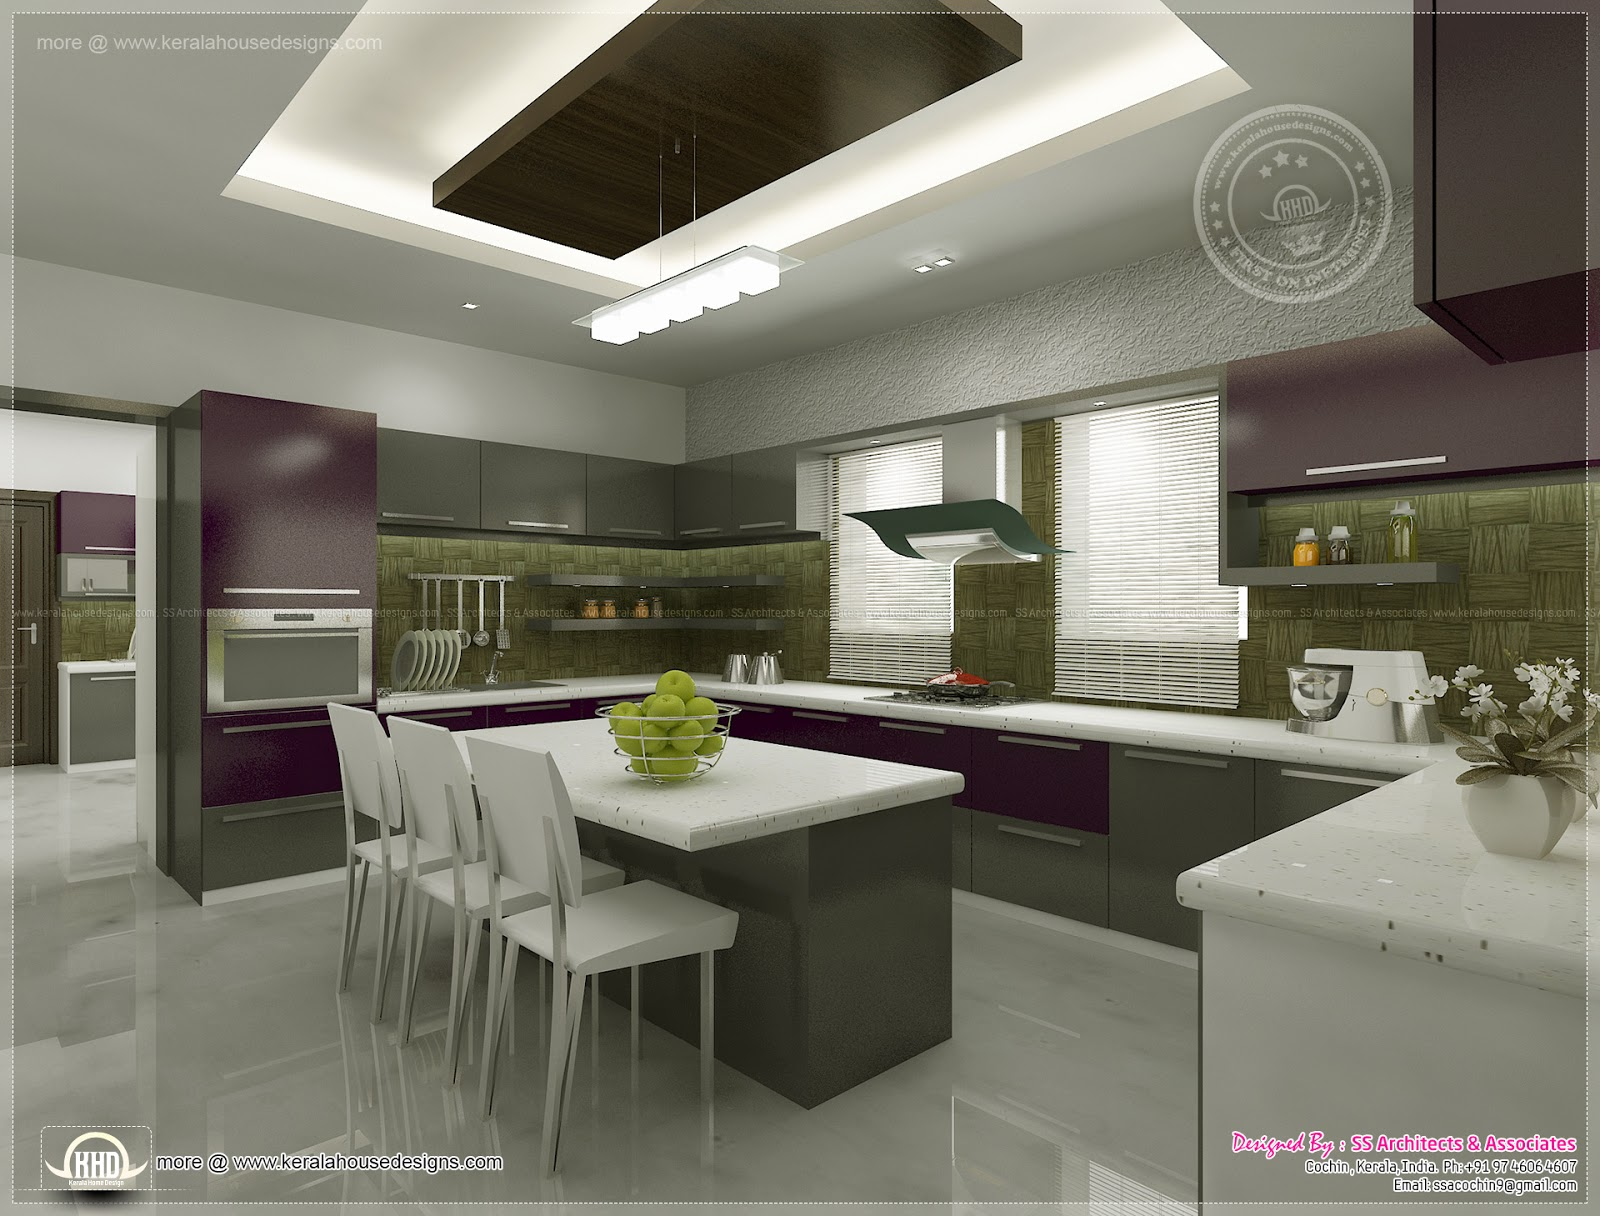 Kitchen interior views by ss architects cochin kerala home design and floor plans - Kitchen interior desing ...